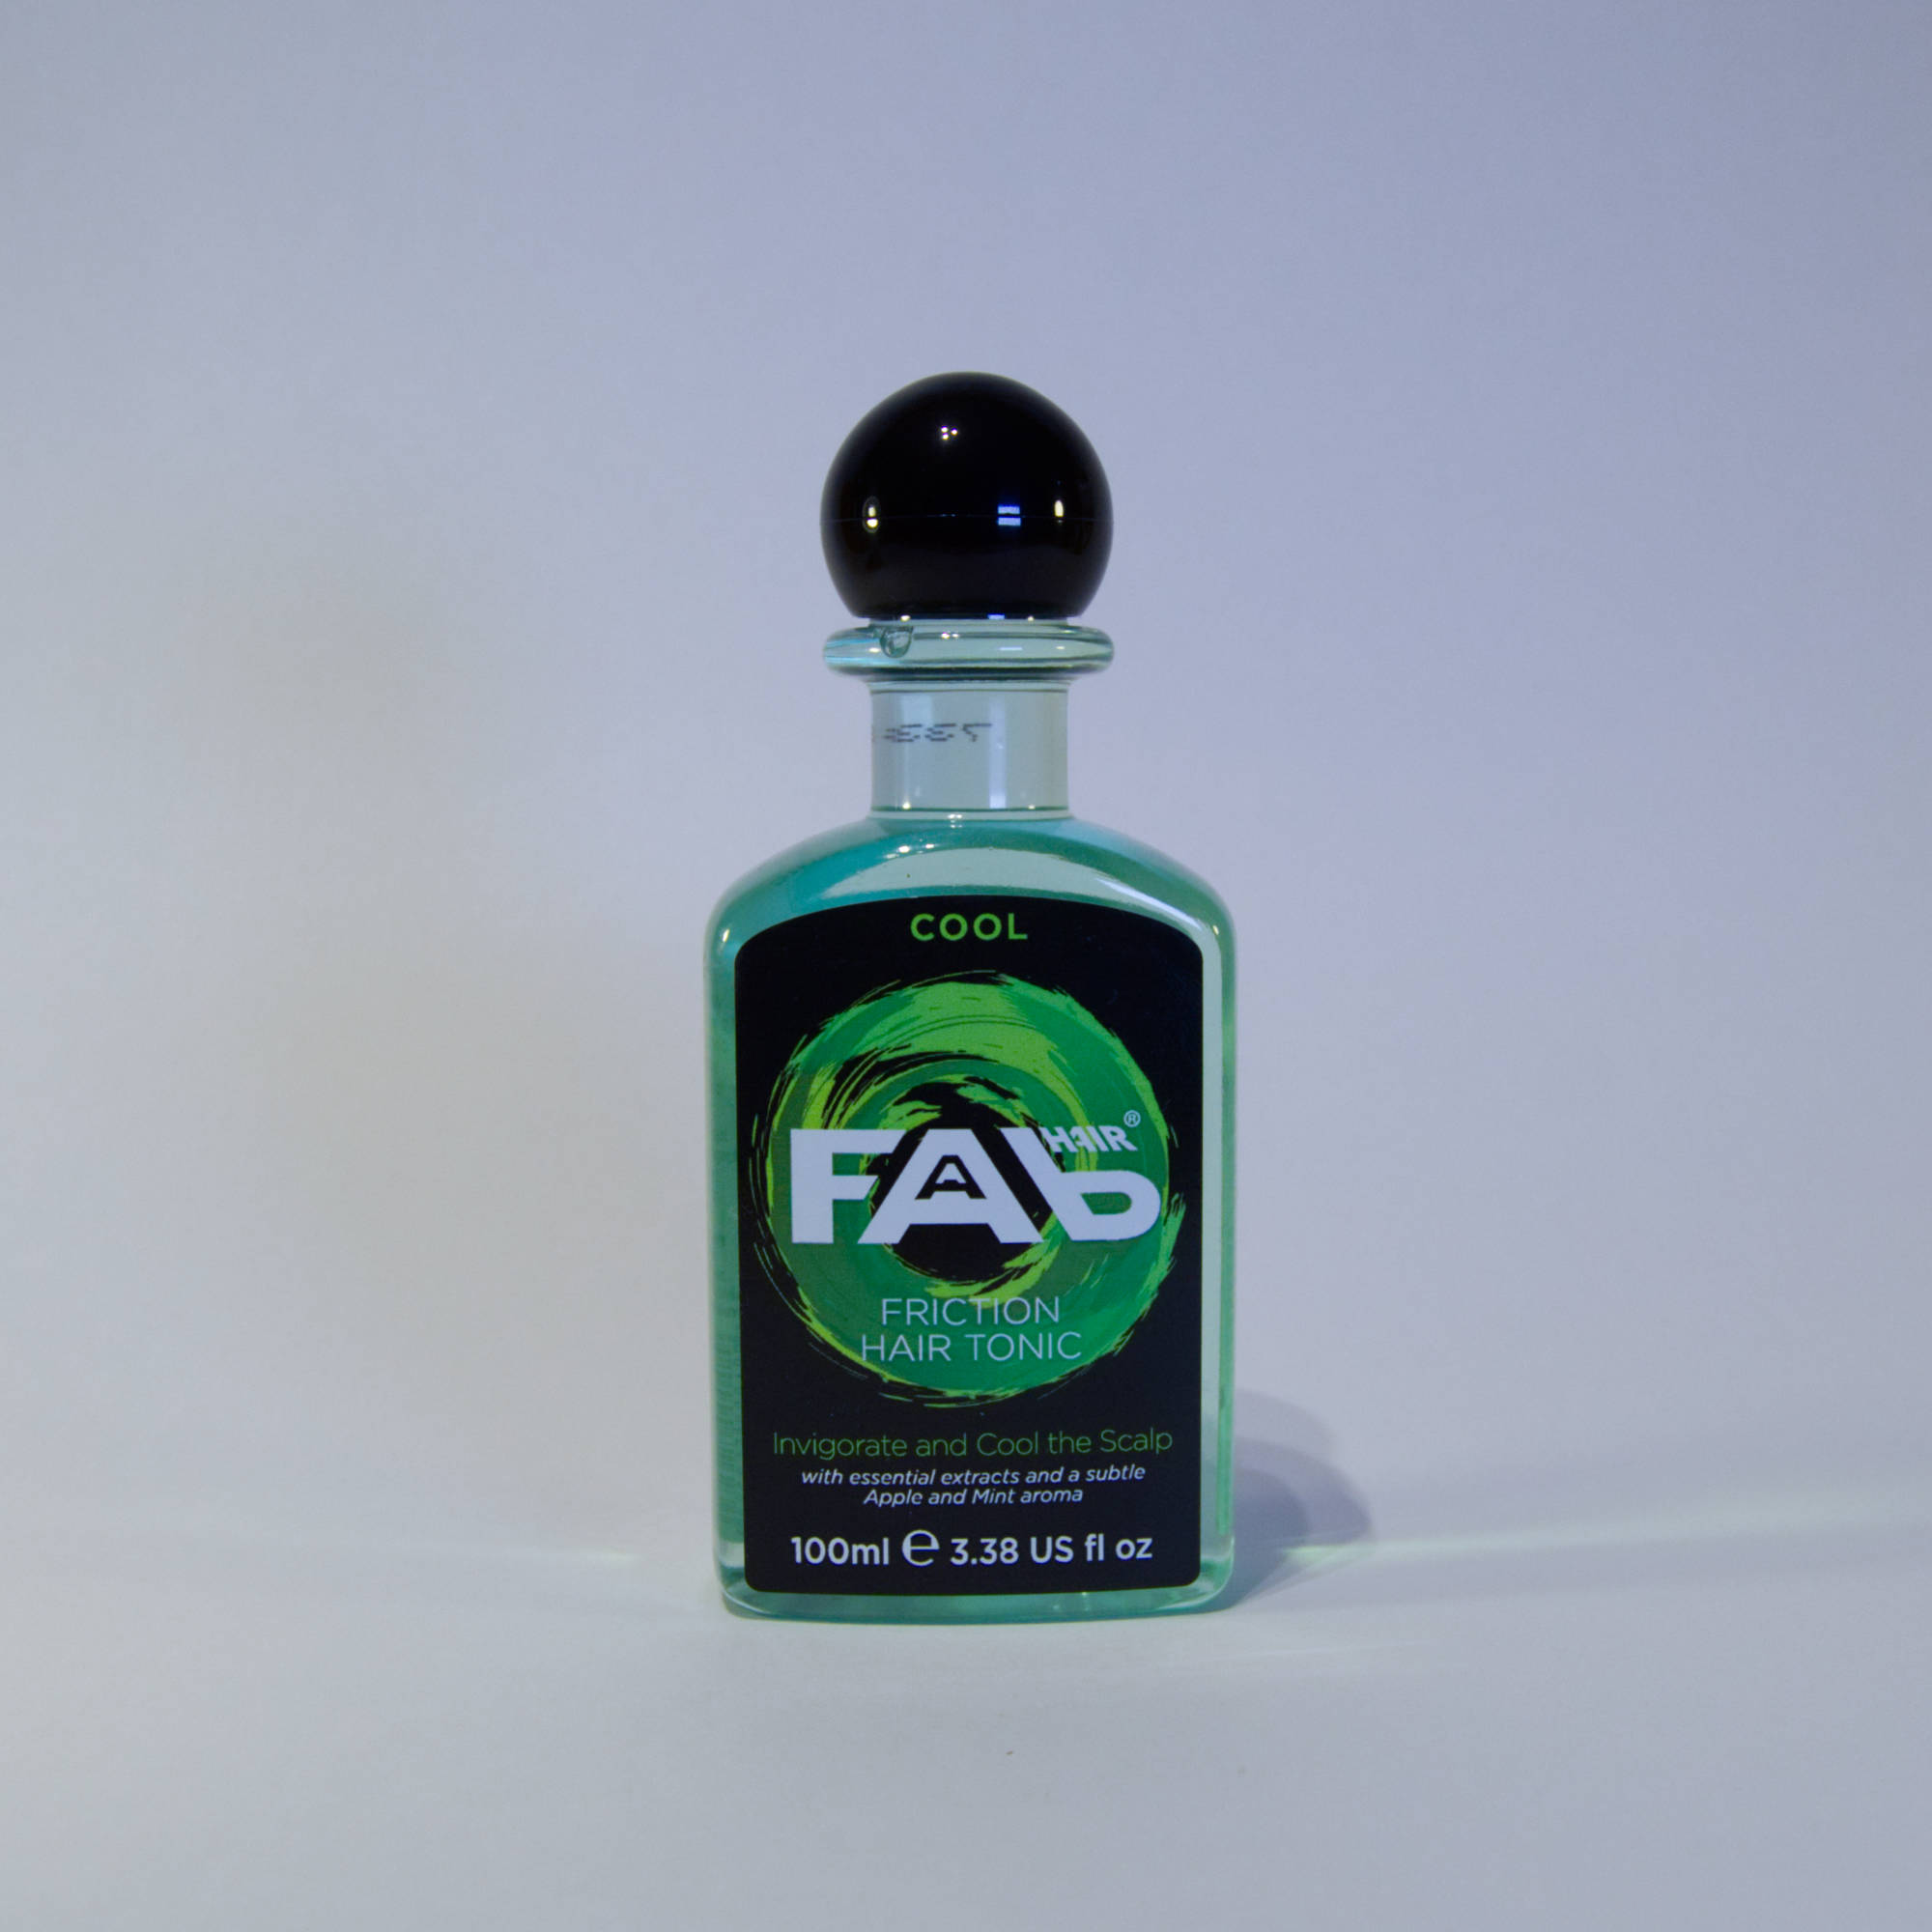 100ml bottle of Cool flavoured FAB friction hair tonic